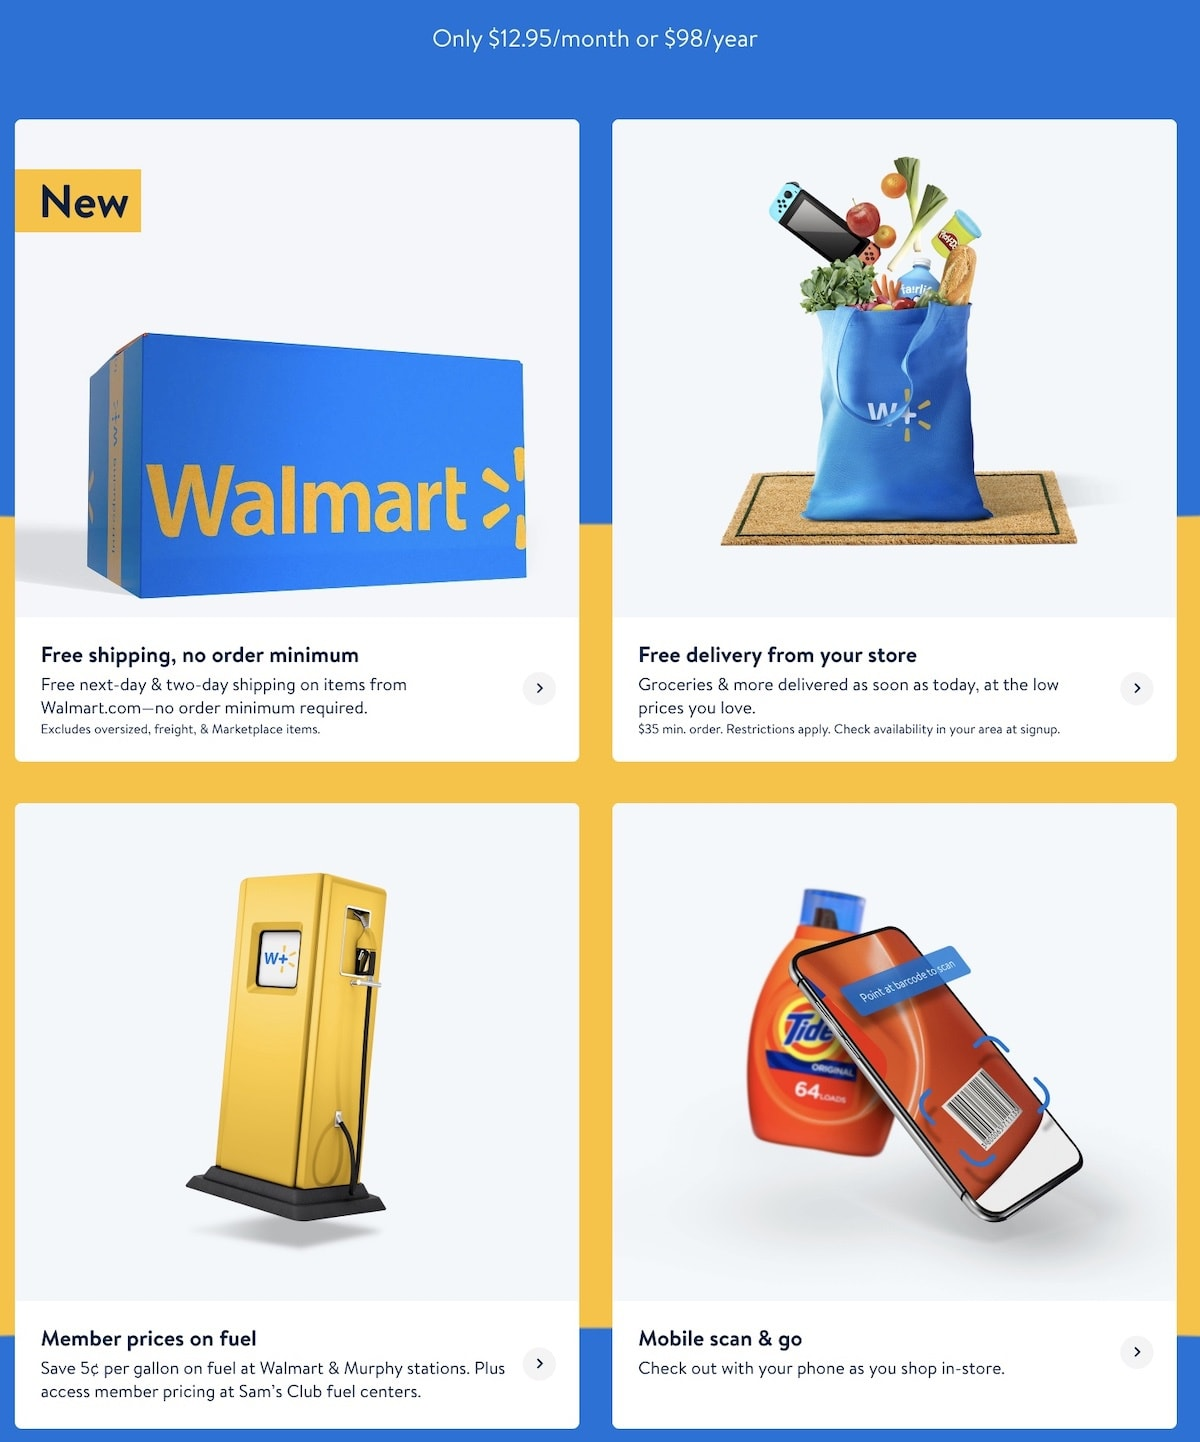 What are the benefits of Walmart+ Subscription?